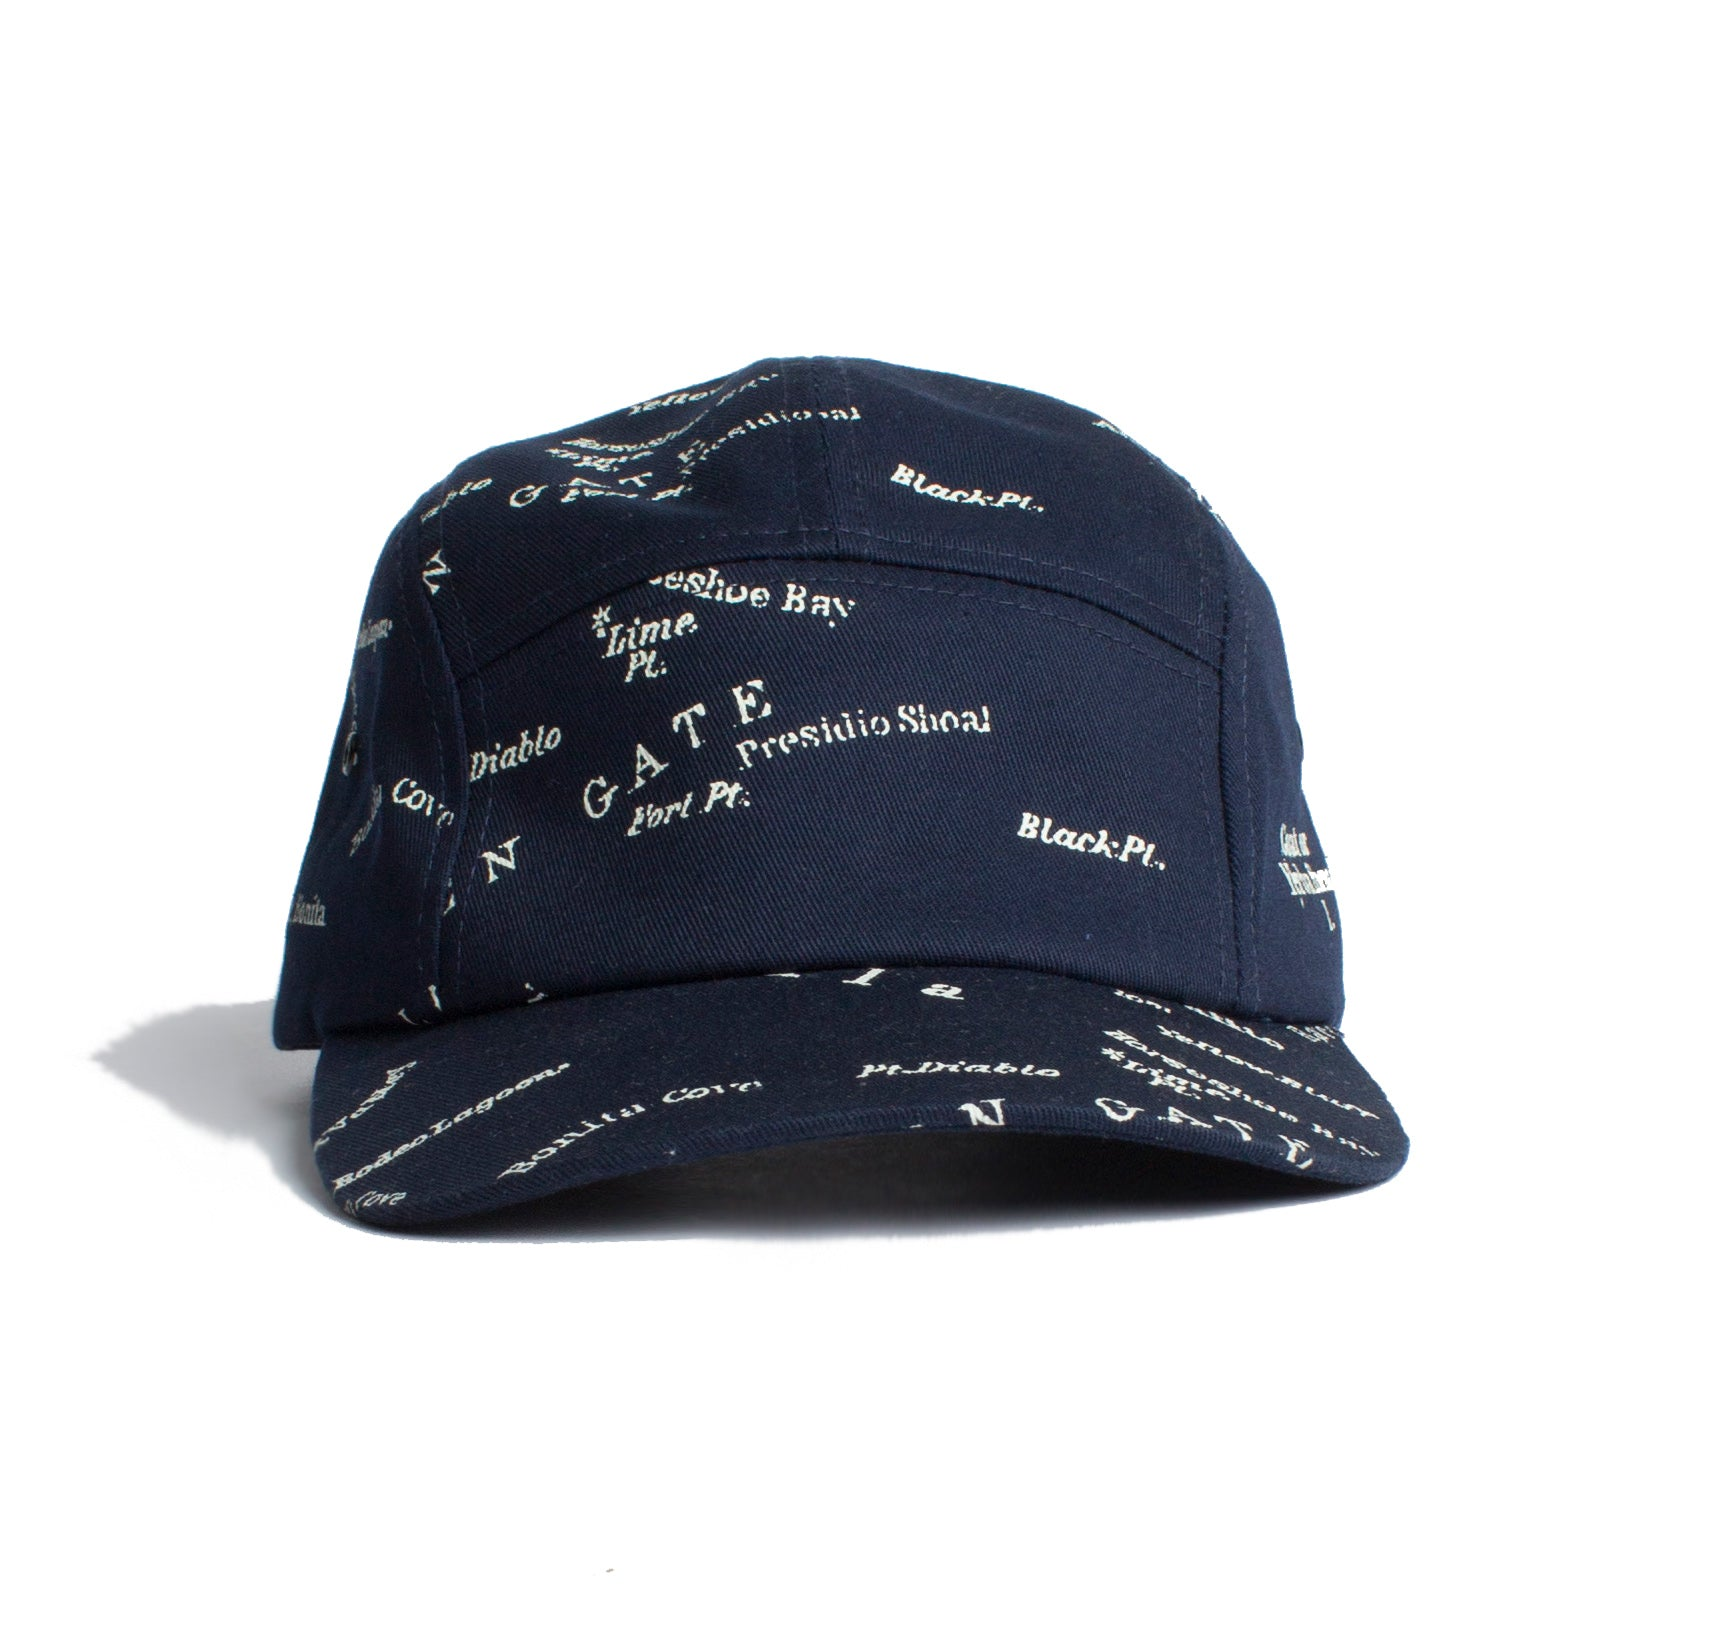 San Francisco Street Map Cap 5 panels